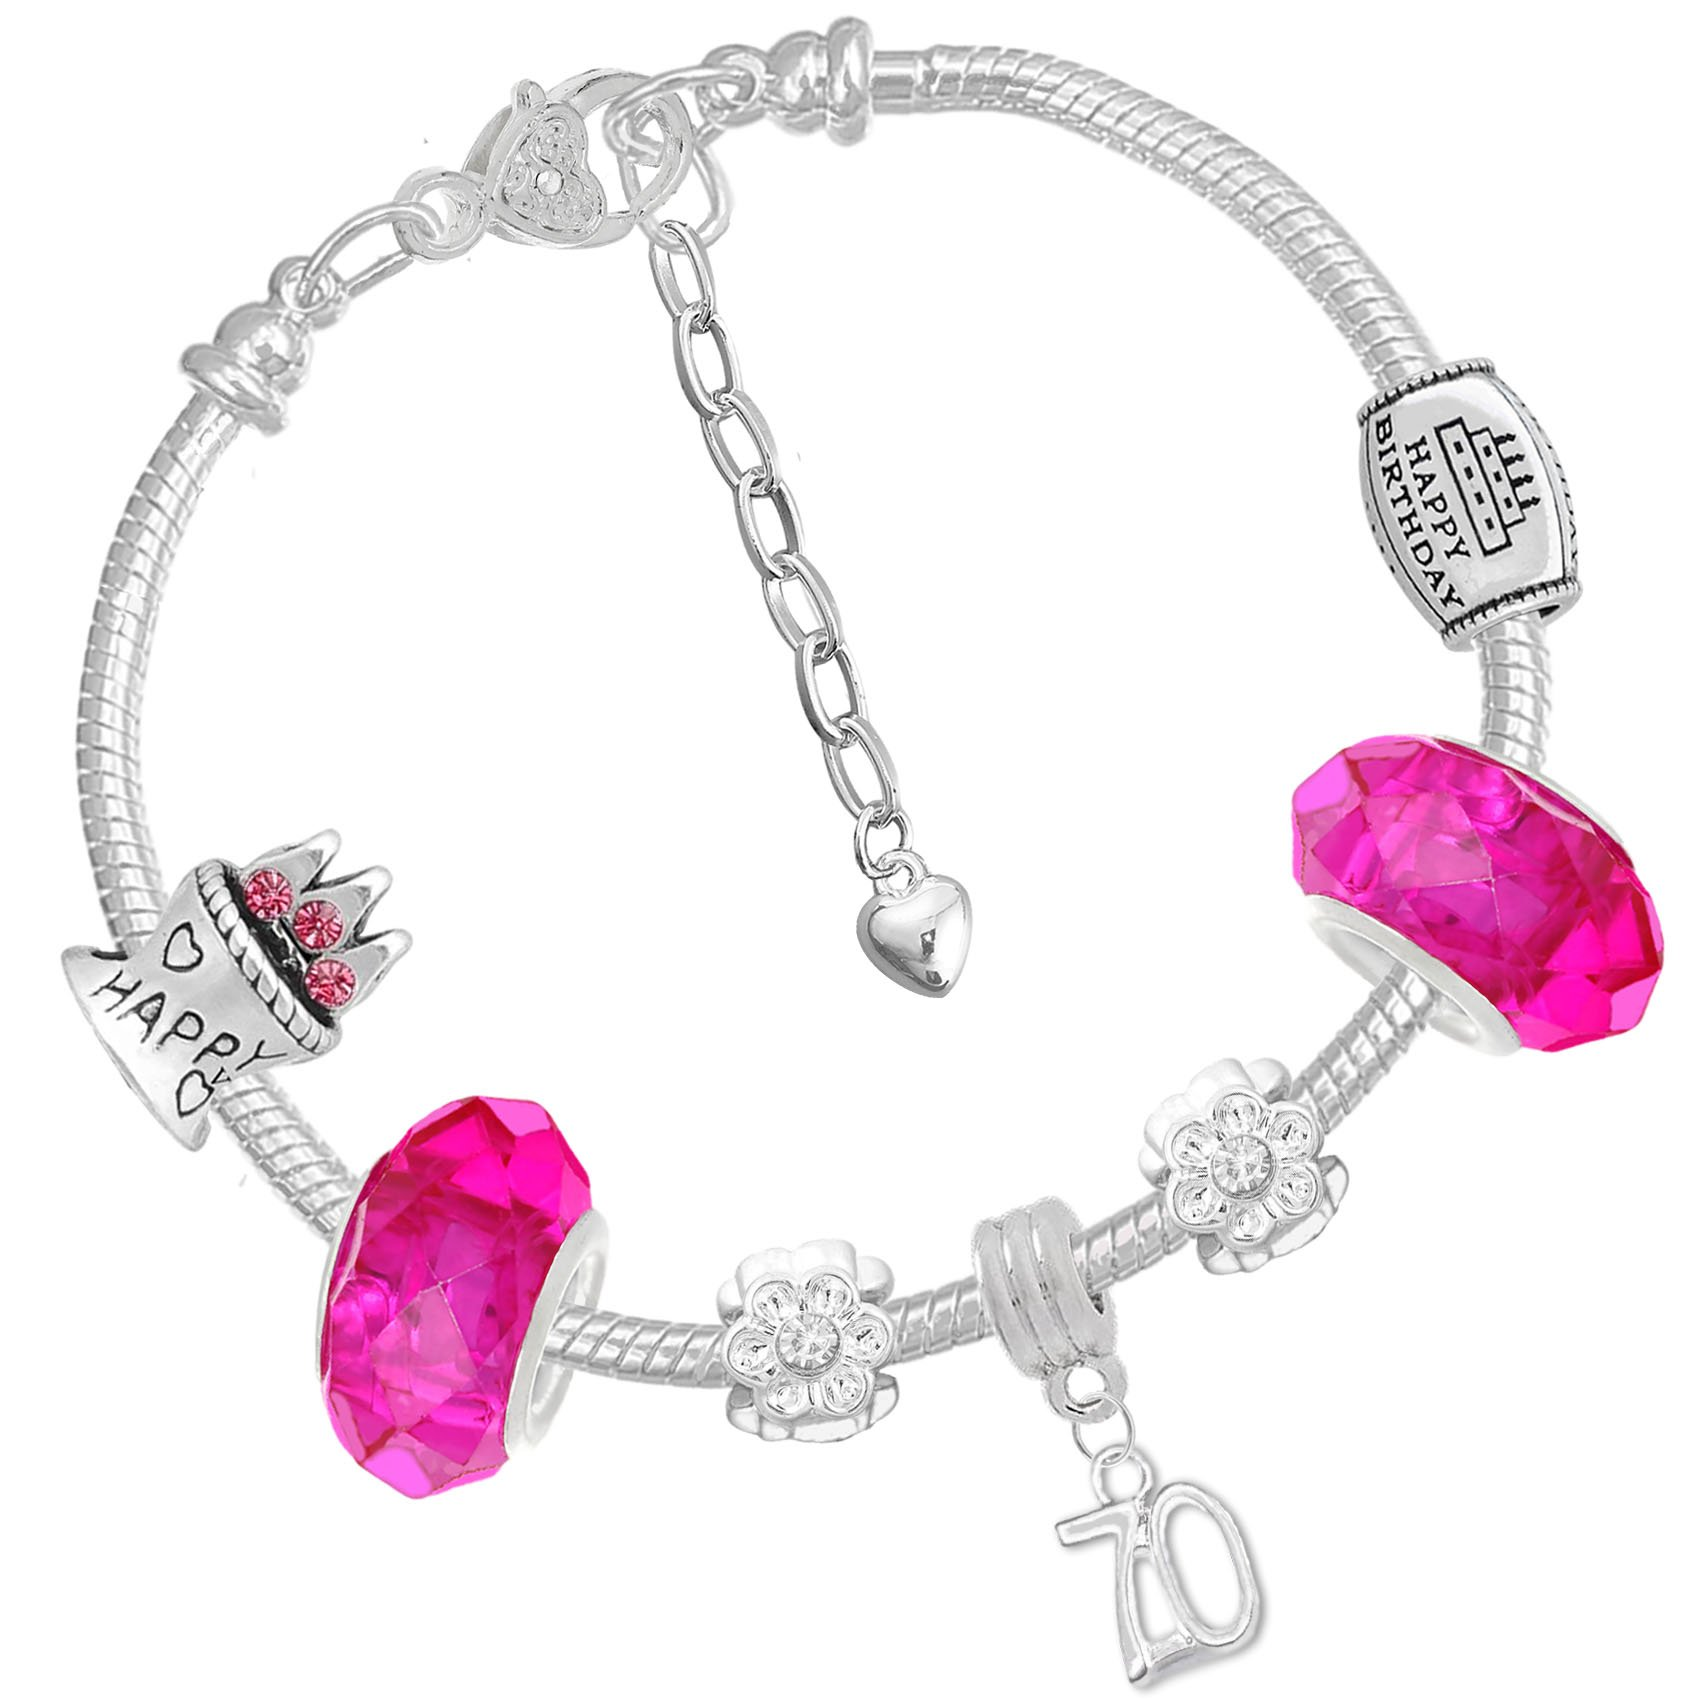 Ladies 70th Birthday Pink Silver Crystal Charm Bracelet and Birthday Card Gift Box Set